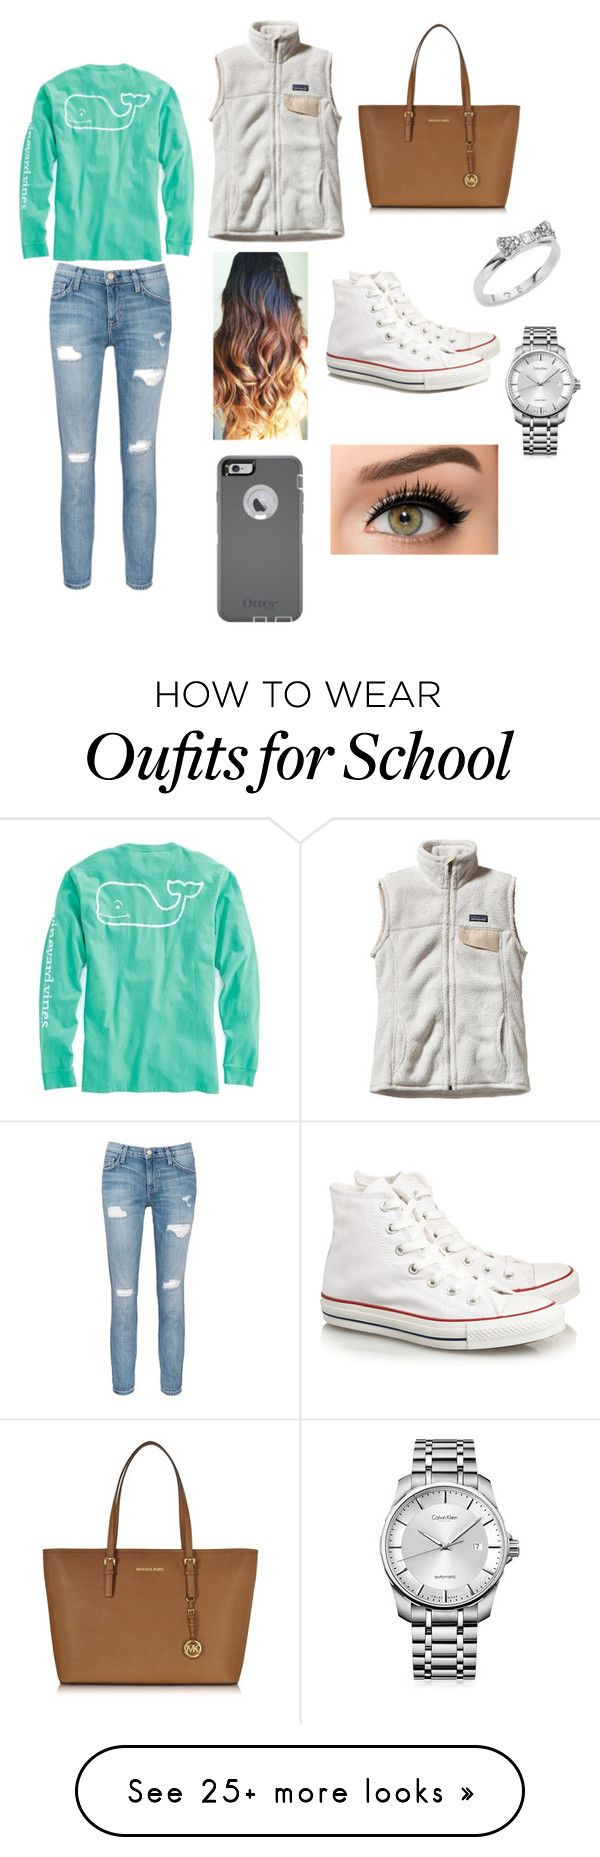 School day ♡ by gracie-norfleet on Polyvore featuring Patagonia, Vineyard Vines, Current/Elliott, Converse, Michael Kors, OtterBox, Kate Spade and Calvin Klein